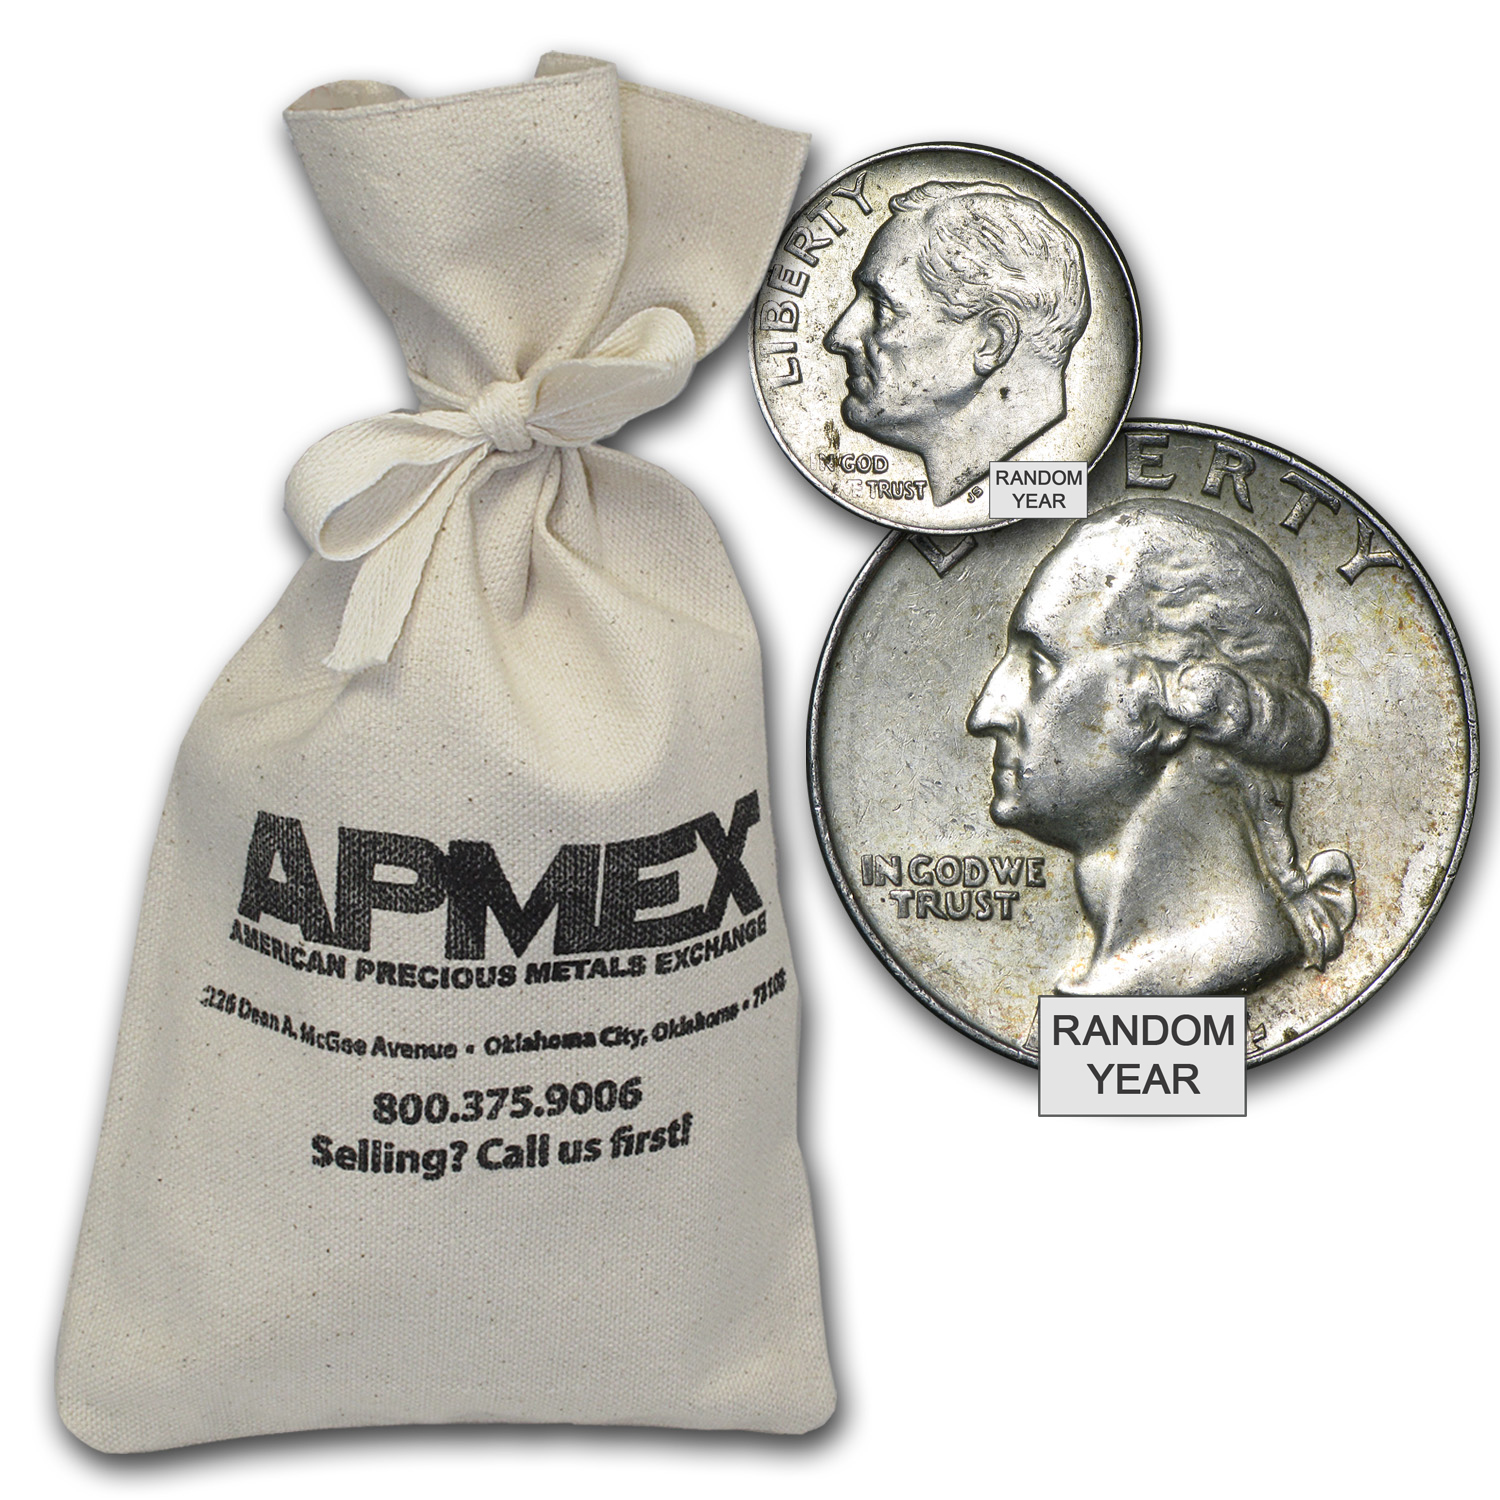 90% Silver Coins - $250 Face-Value Bag